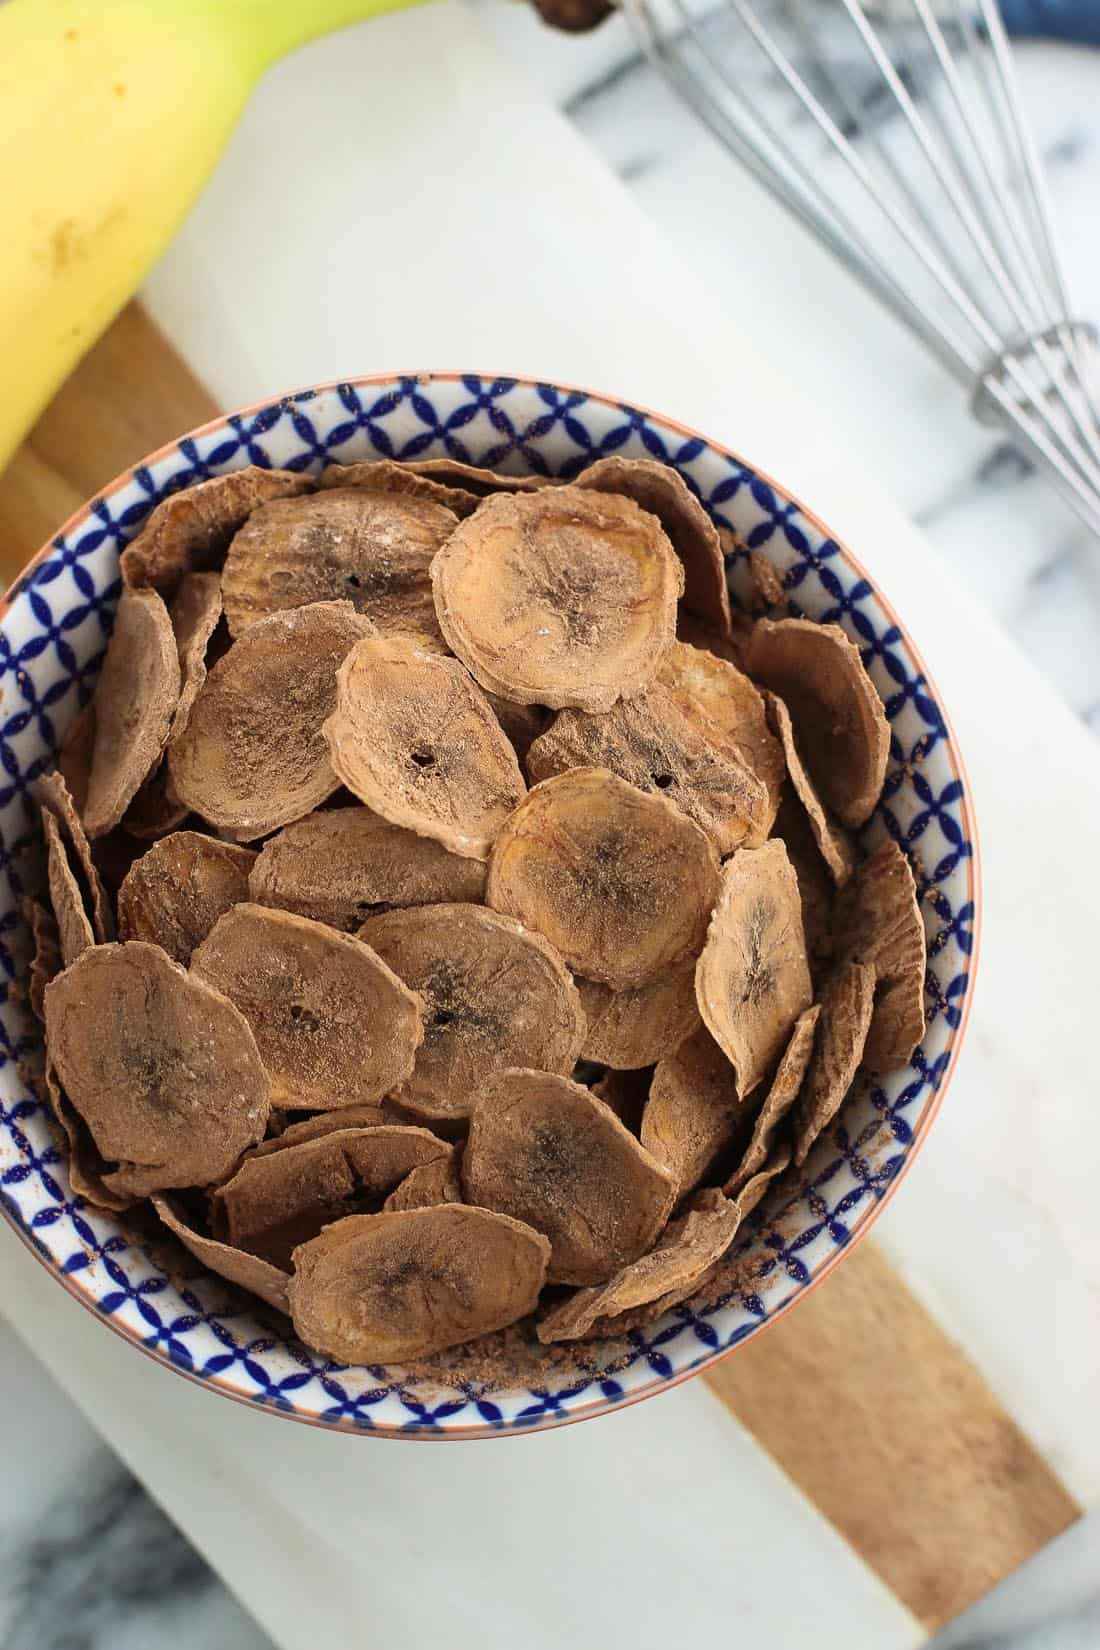 Baked cocoa banana chips are a healthy, oven-baked snack with a satisfying crunch. Just four ingredients are all you need for this easy snack recipe!